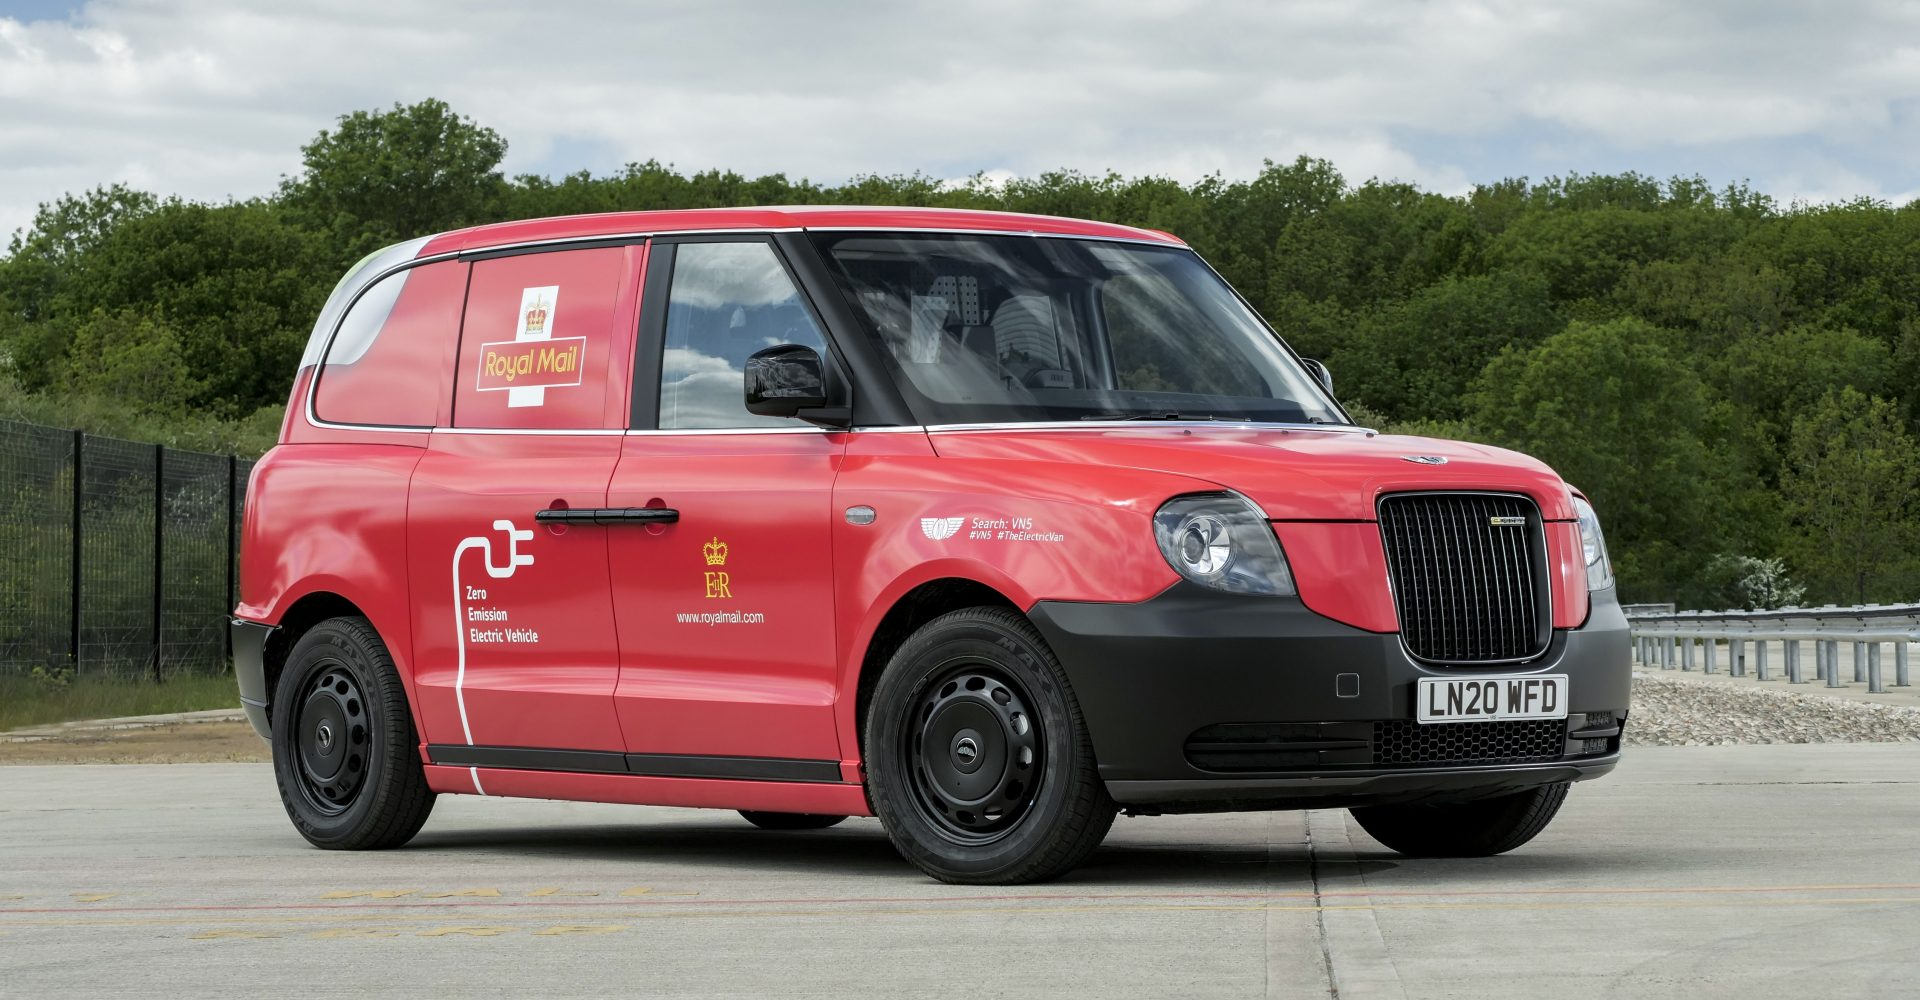 Royal Mail to trial electric vans for deliveries